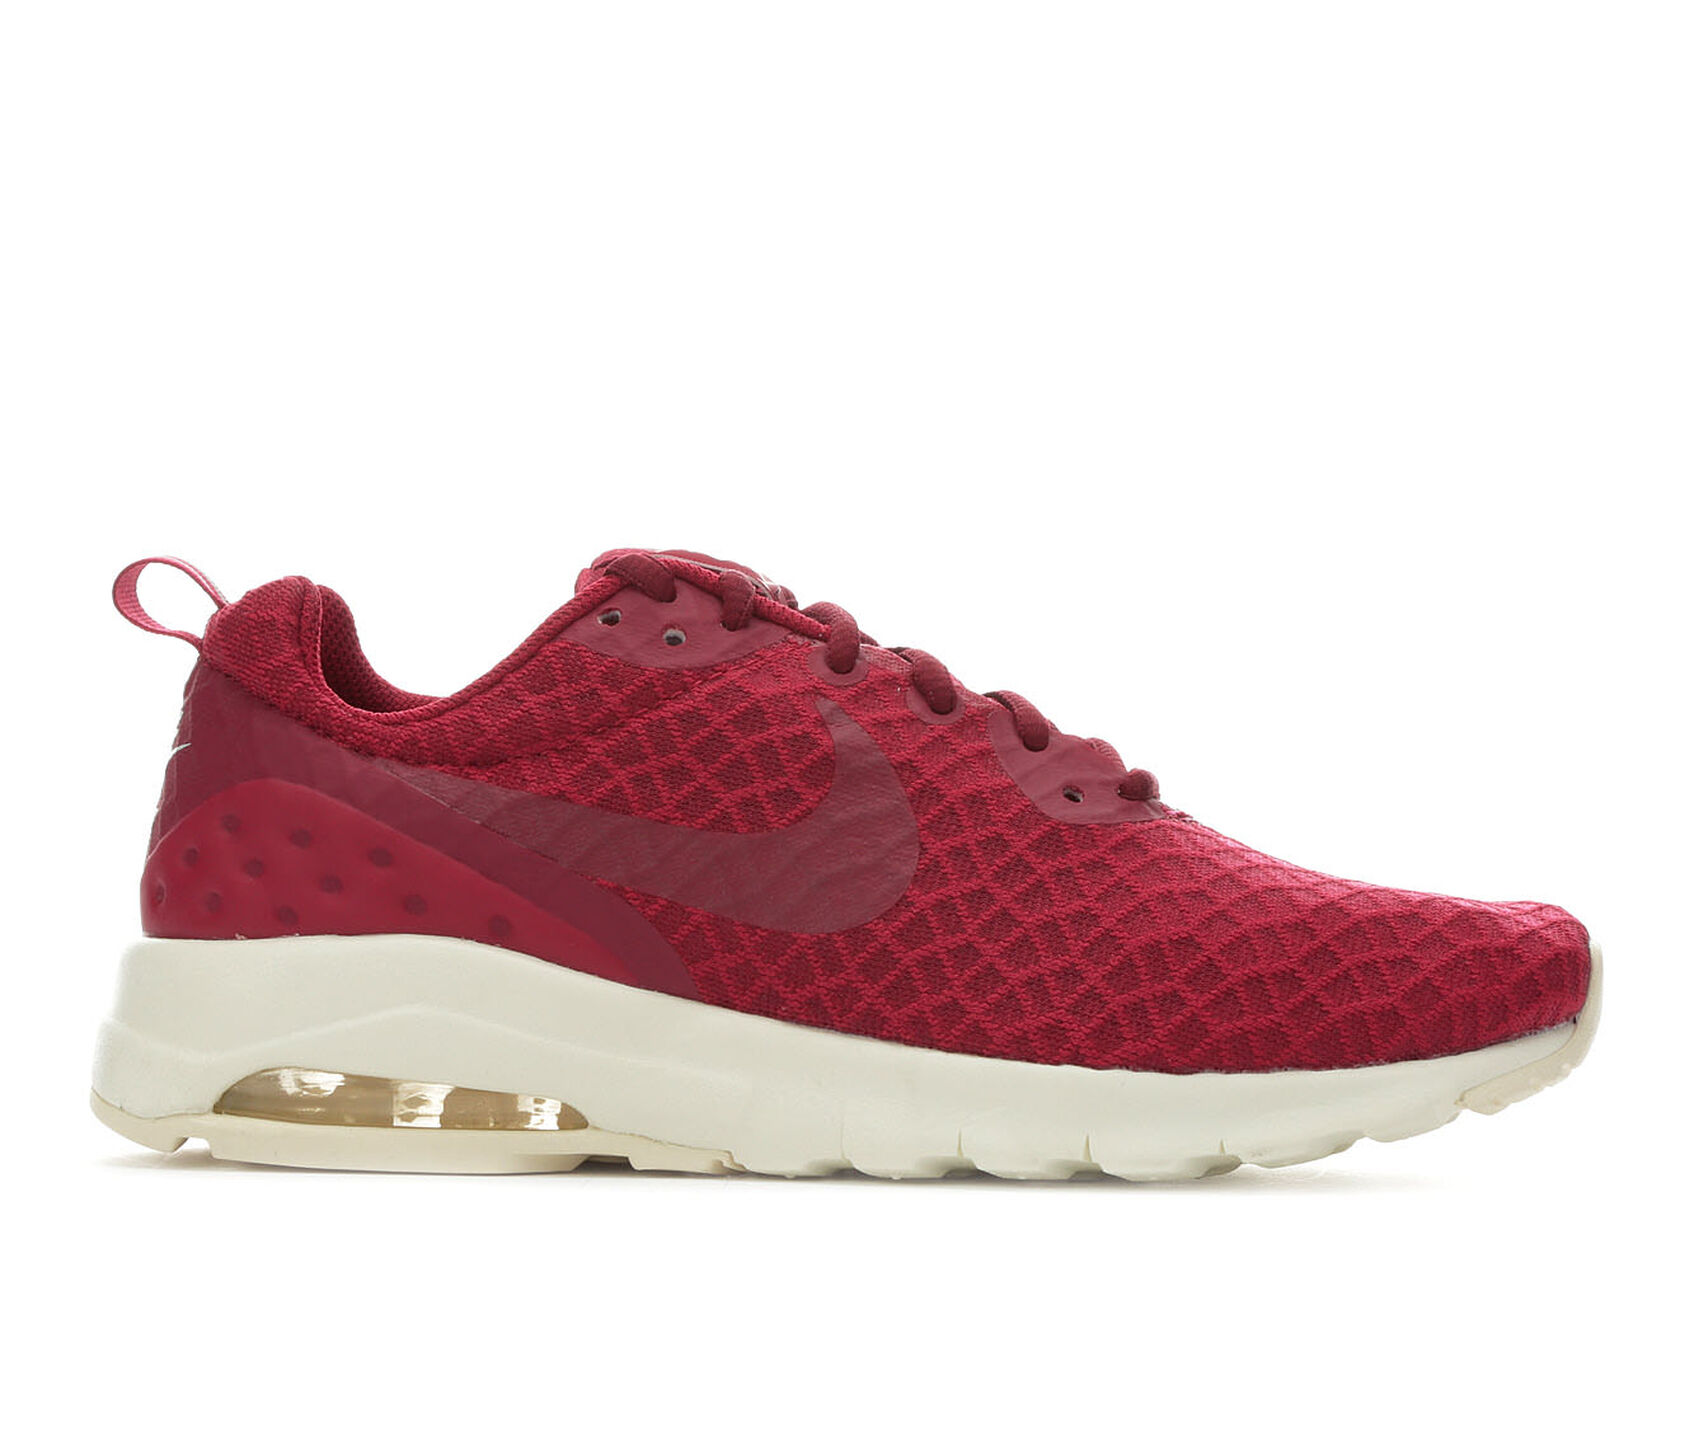 bd8609bd788 Images. Women's Nike Air Max Motion Low SE Sneakers